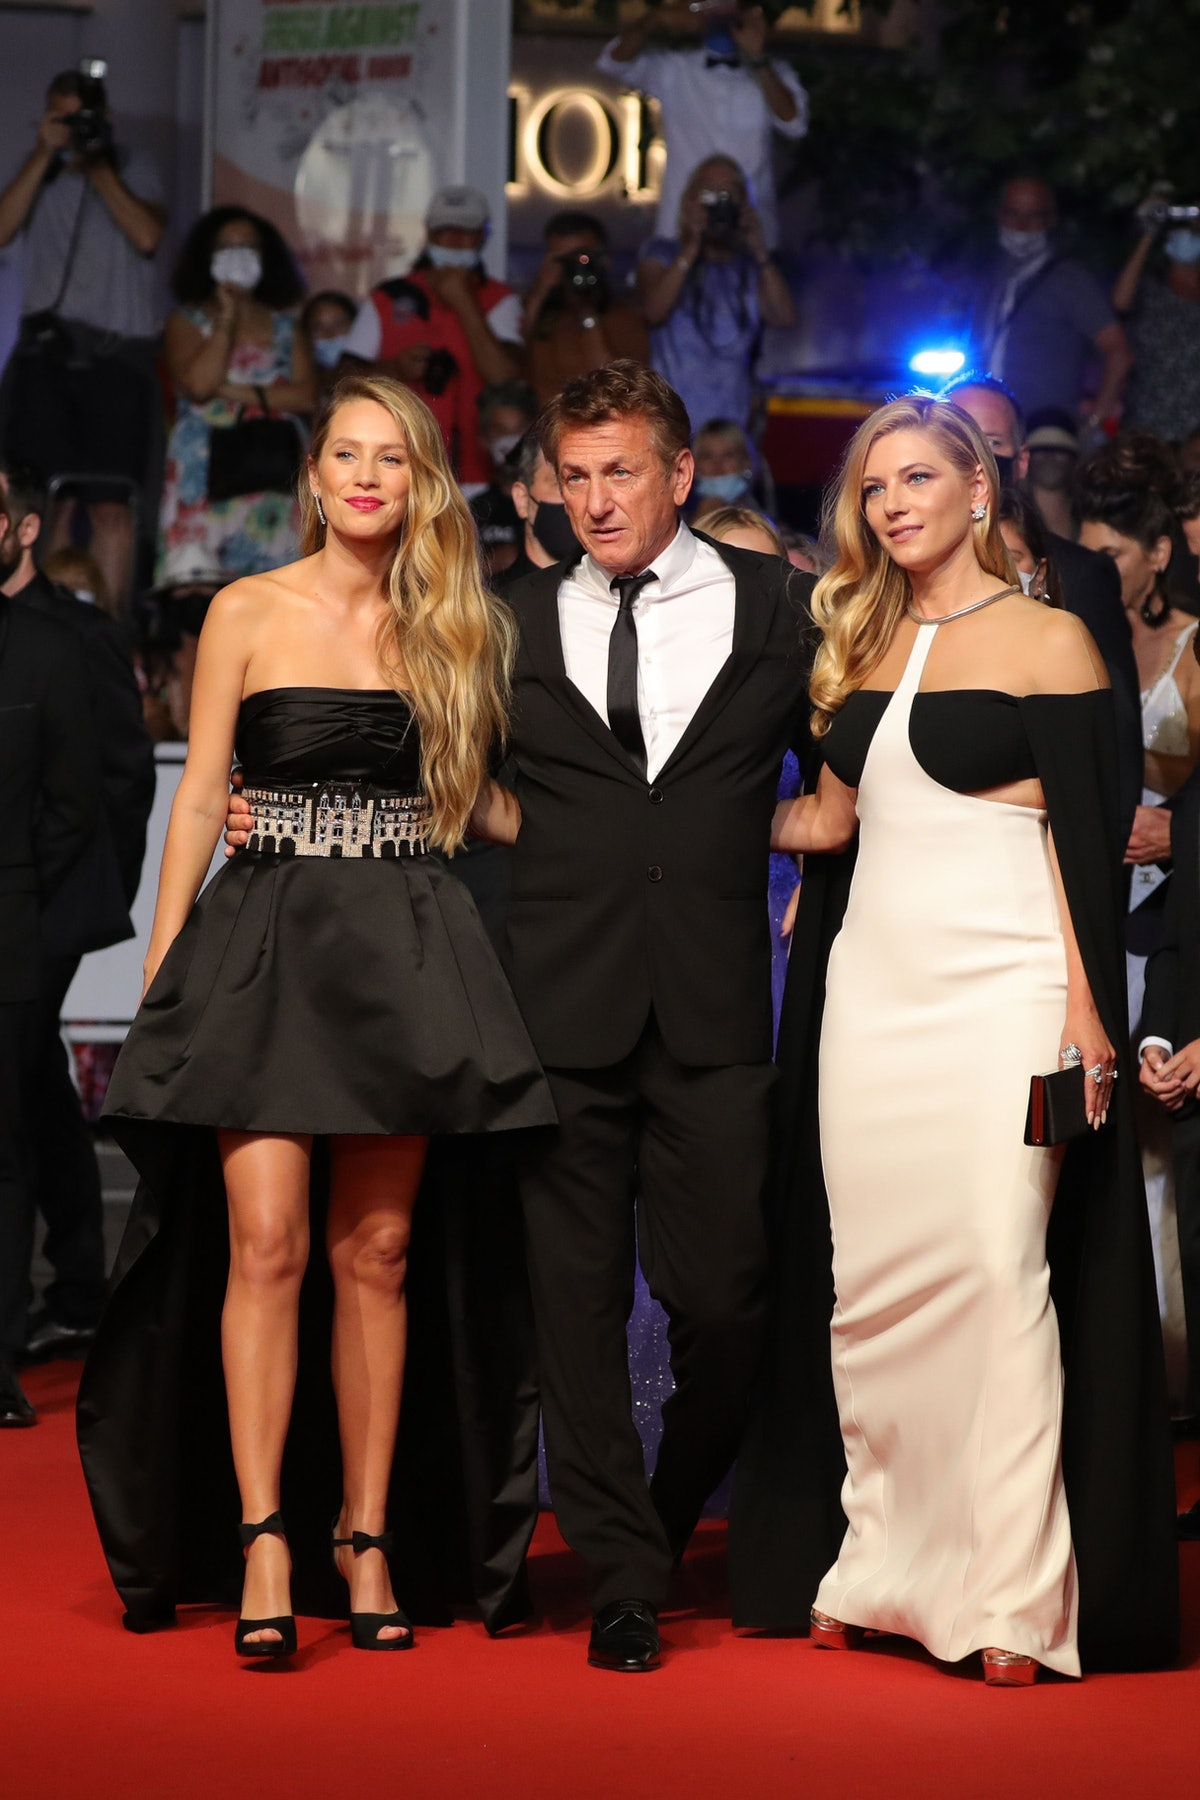 """CANNES, FRANCE - JULY 10: Sean Penn, Dylan Penn and Katheryn Winnick attend the """"Flag Day"""" screening during the 74th annual Cannes Film Festival on July 10, 2021 in Cannes, France. (Photo by Vittorio Zunino Celotto/Getty Images for Kering)"""